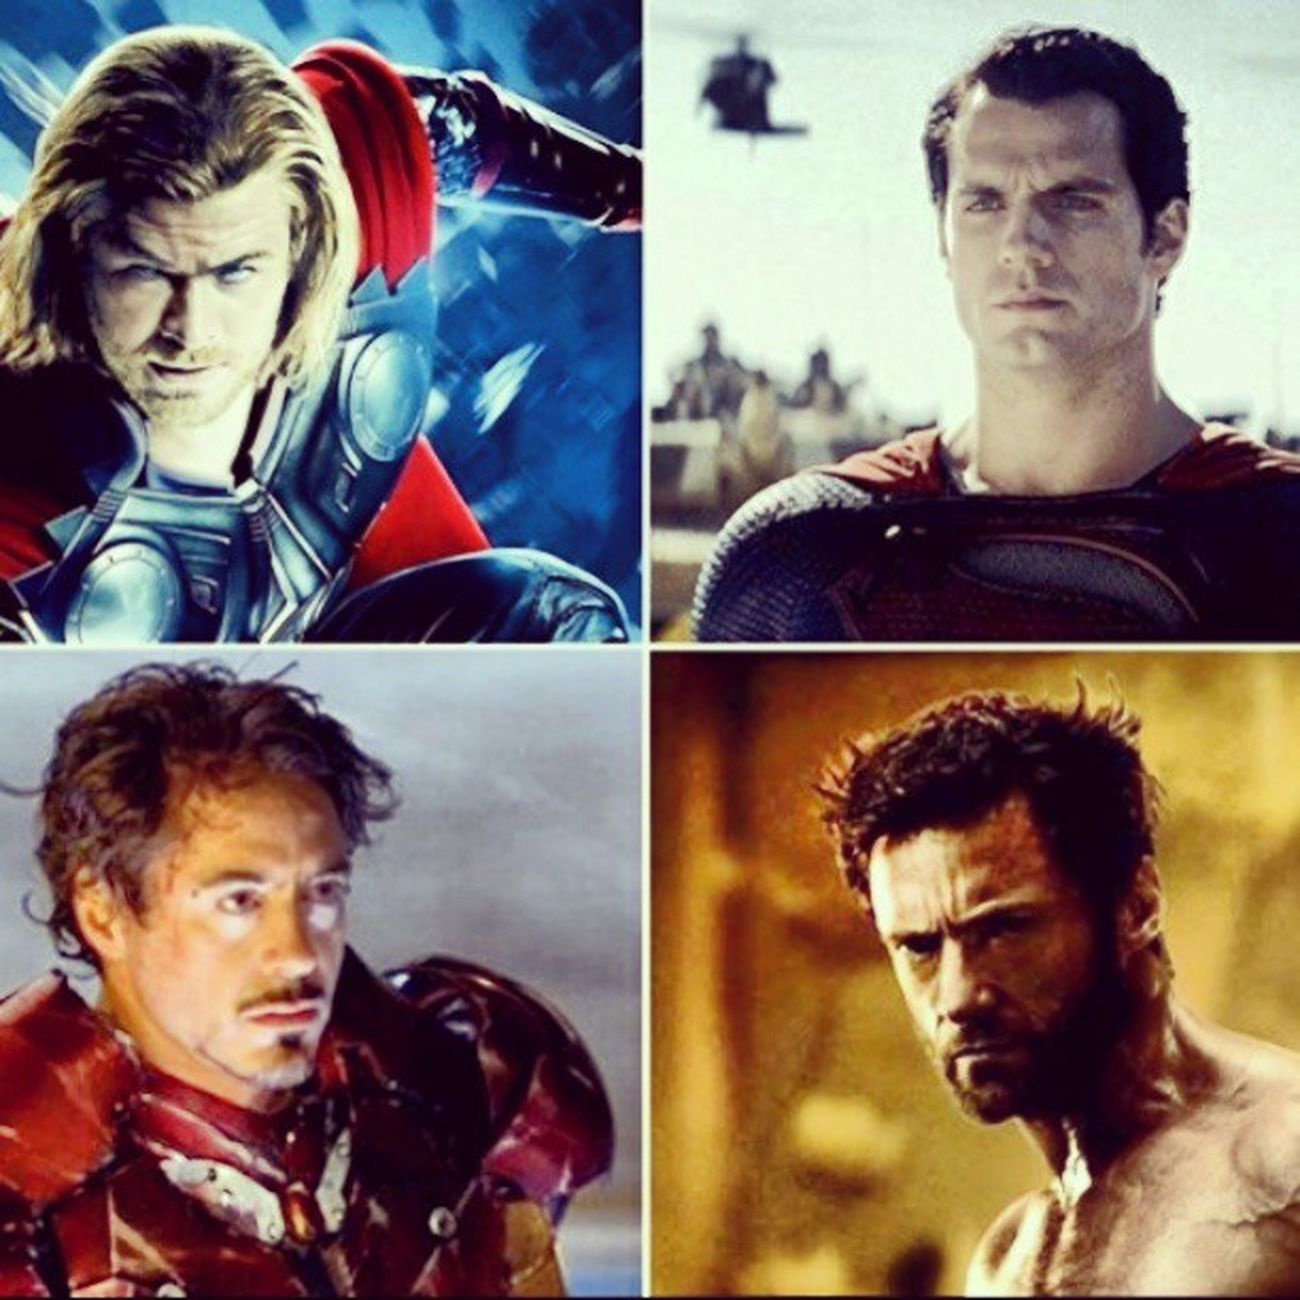 the four biggest superhero movies for this year Thewolverine Manofsteel Ironman3 and Thordarkworld